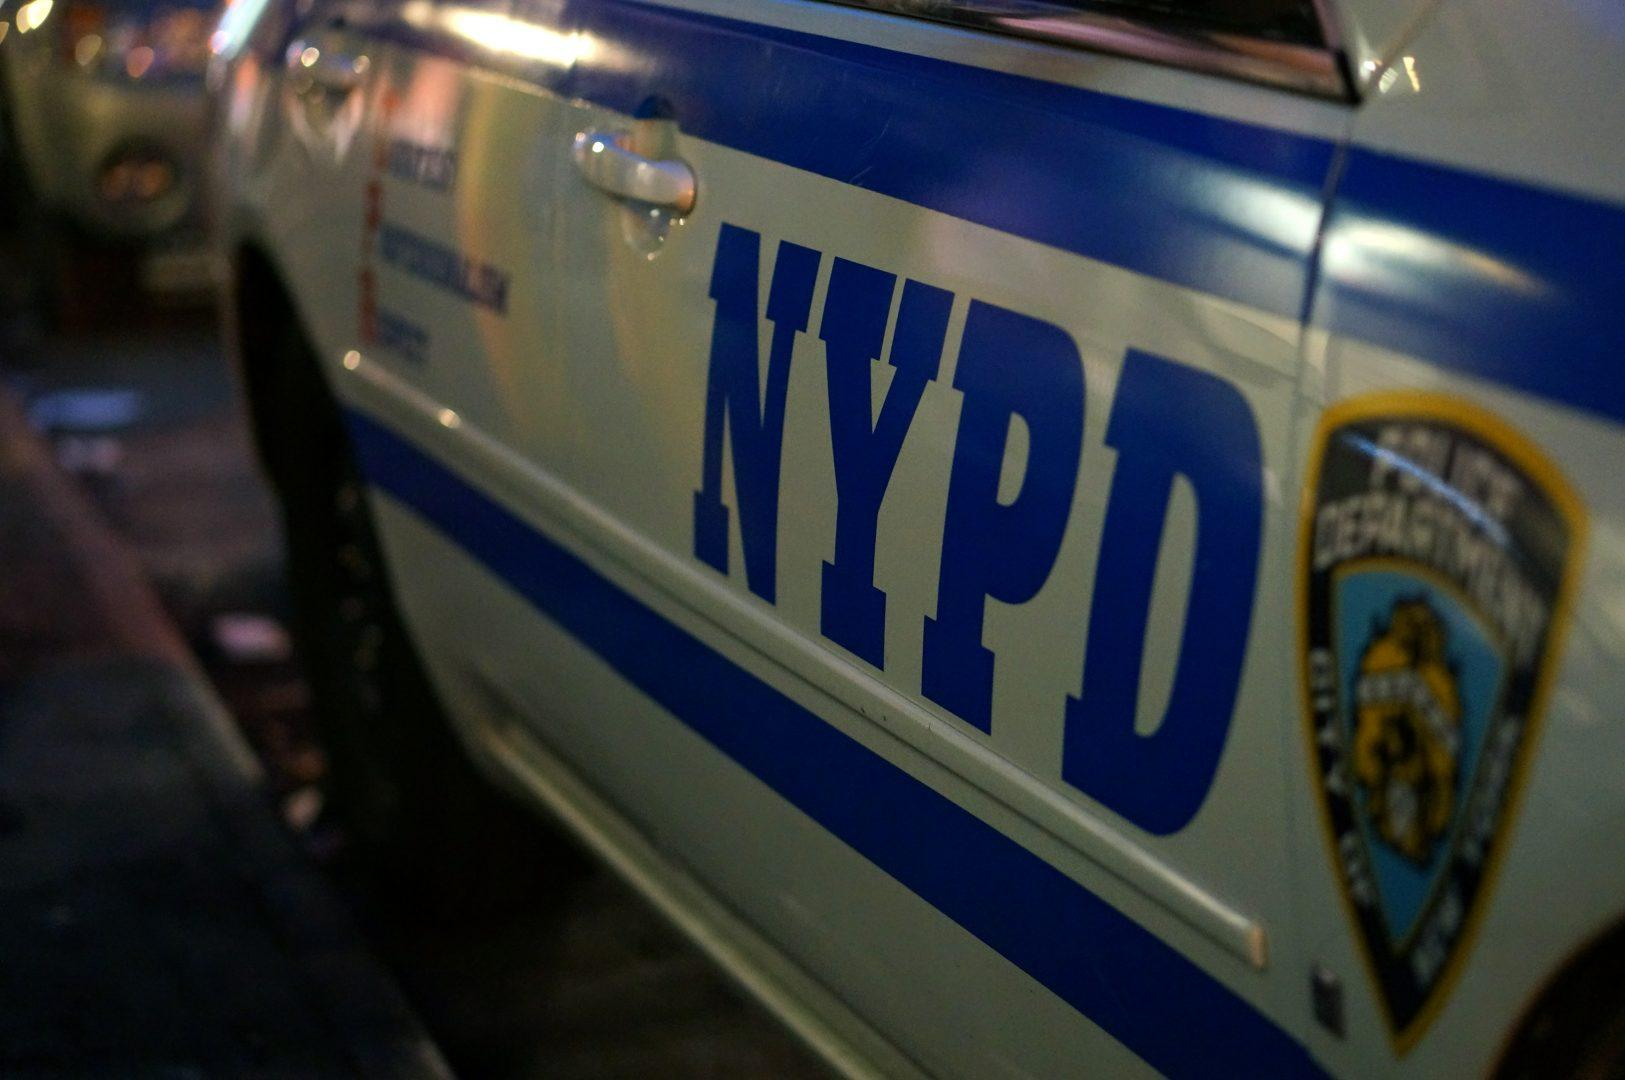 The Fight Against Stop-and-Frisk Policies Must Not Stop